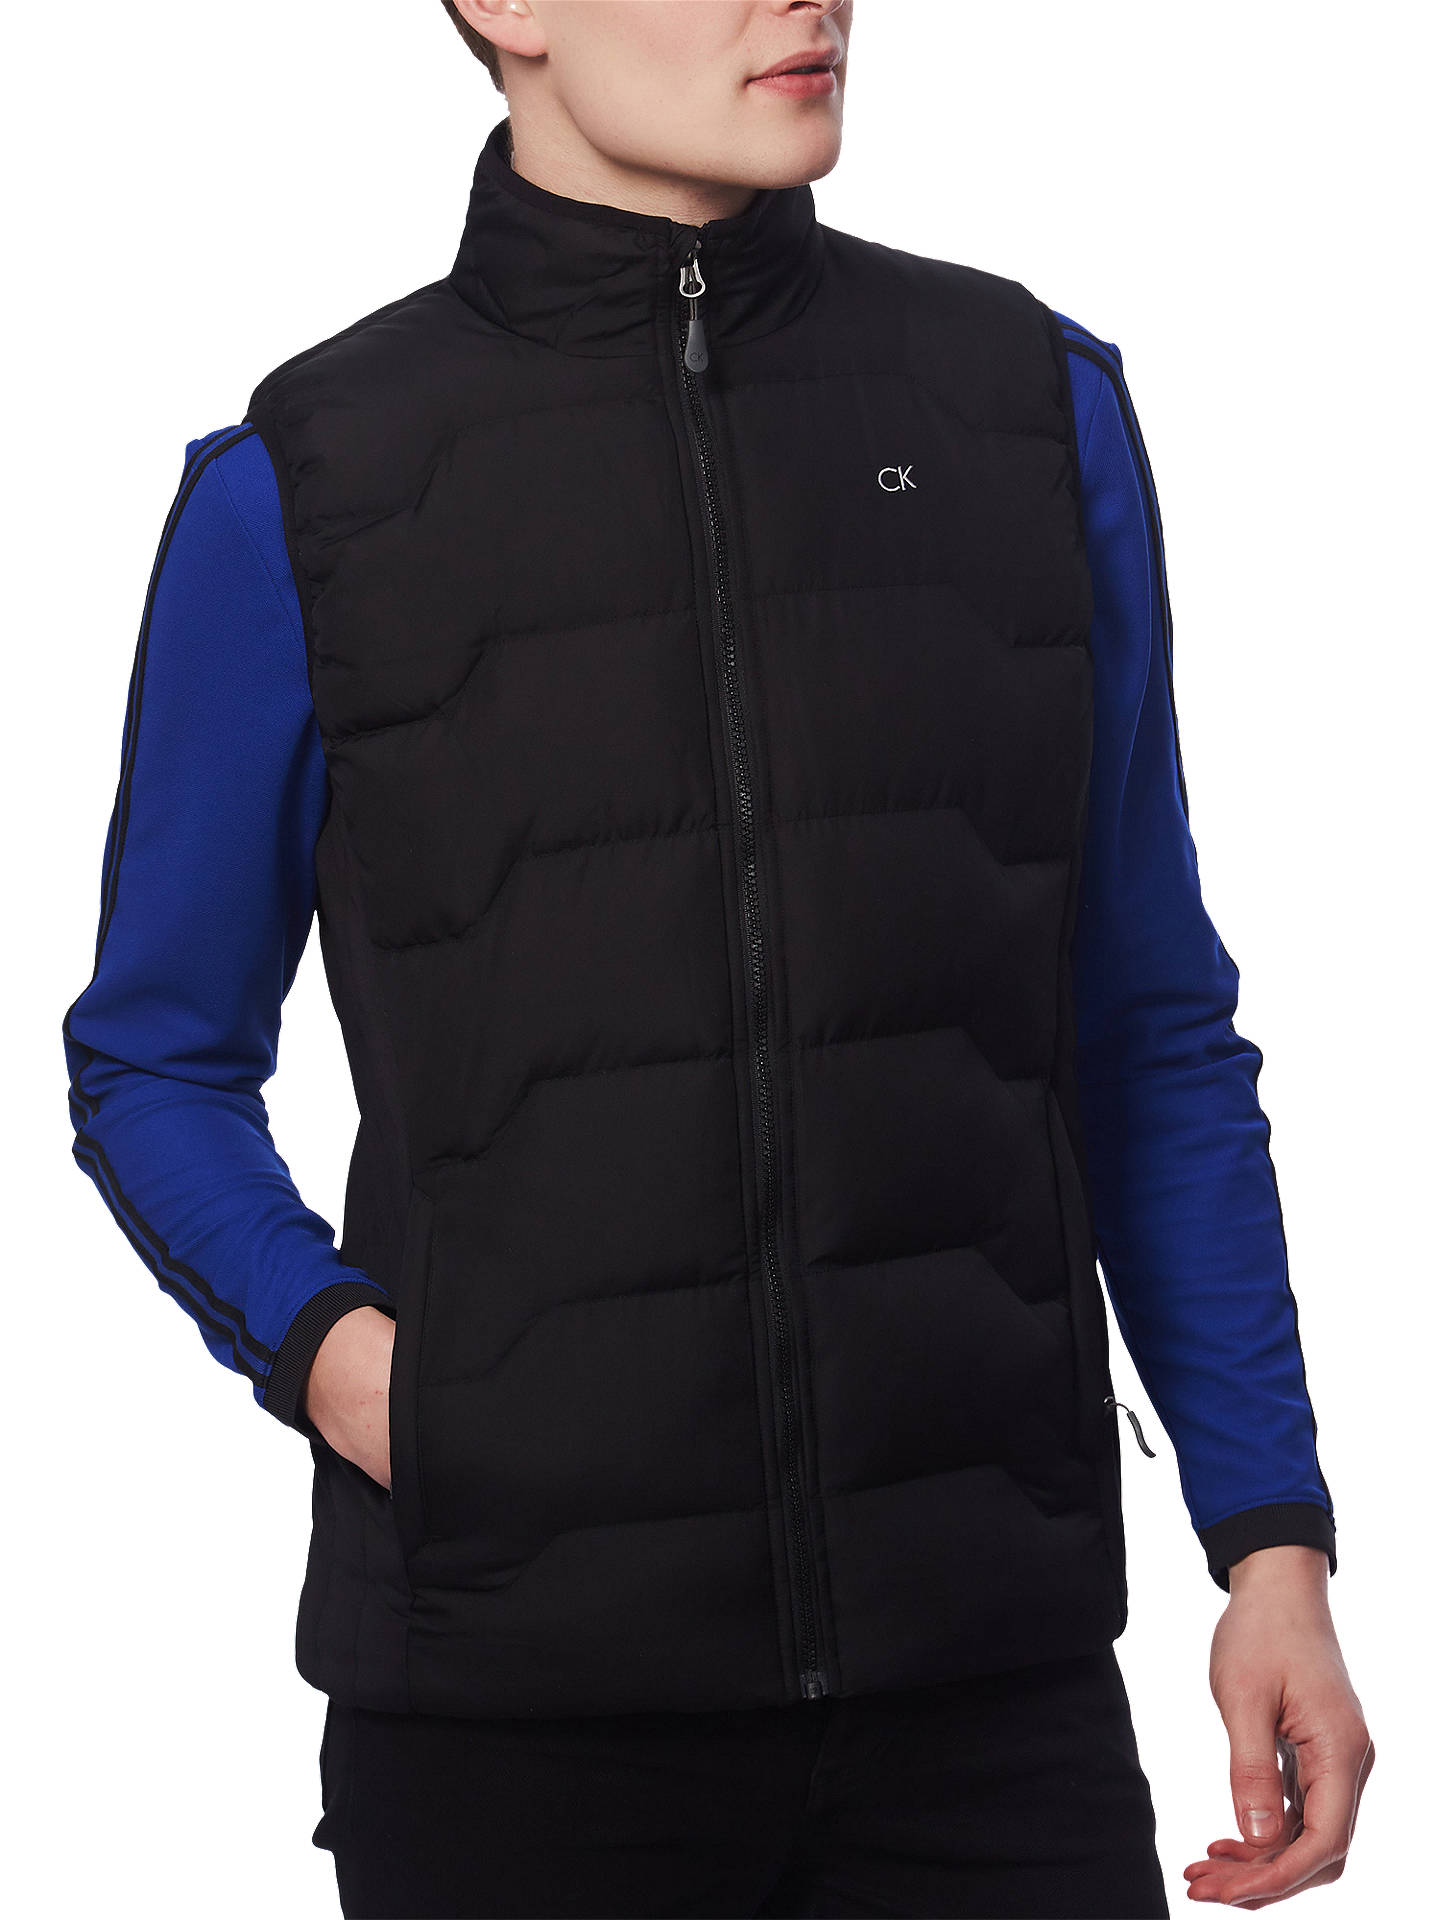 Buy Calvin Klein Golf Hyp Gilet, Black, S Online at johnlewis.com